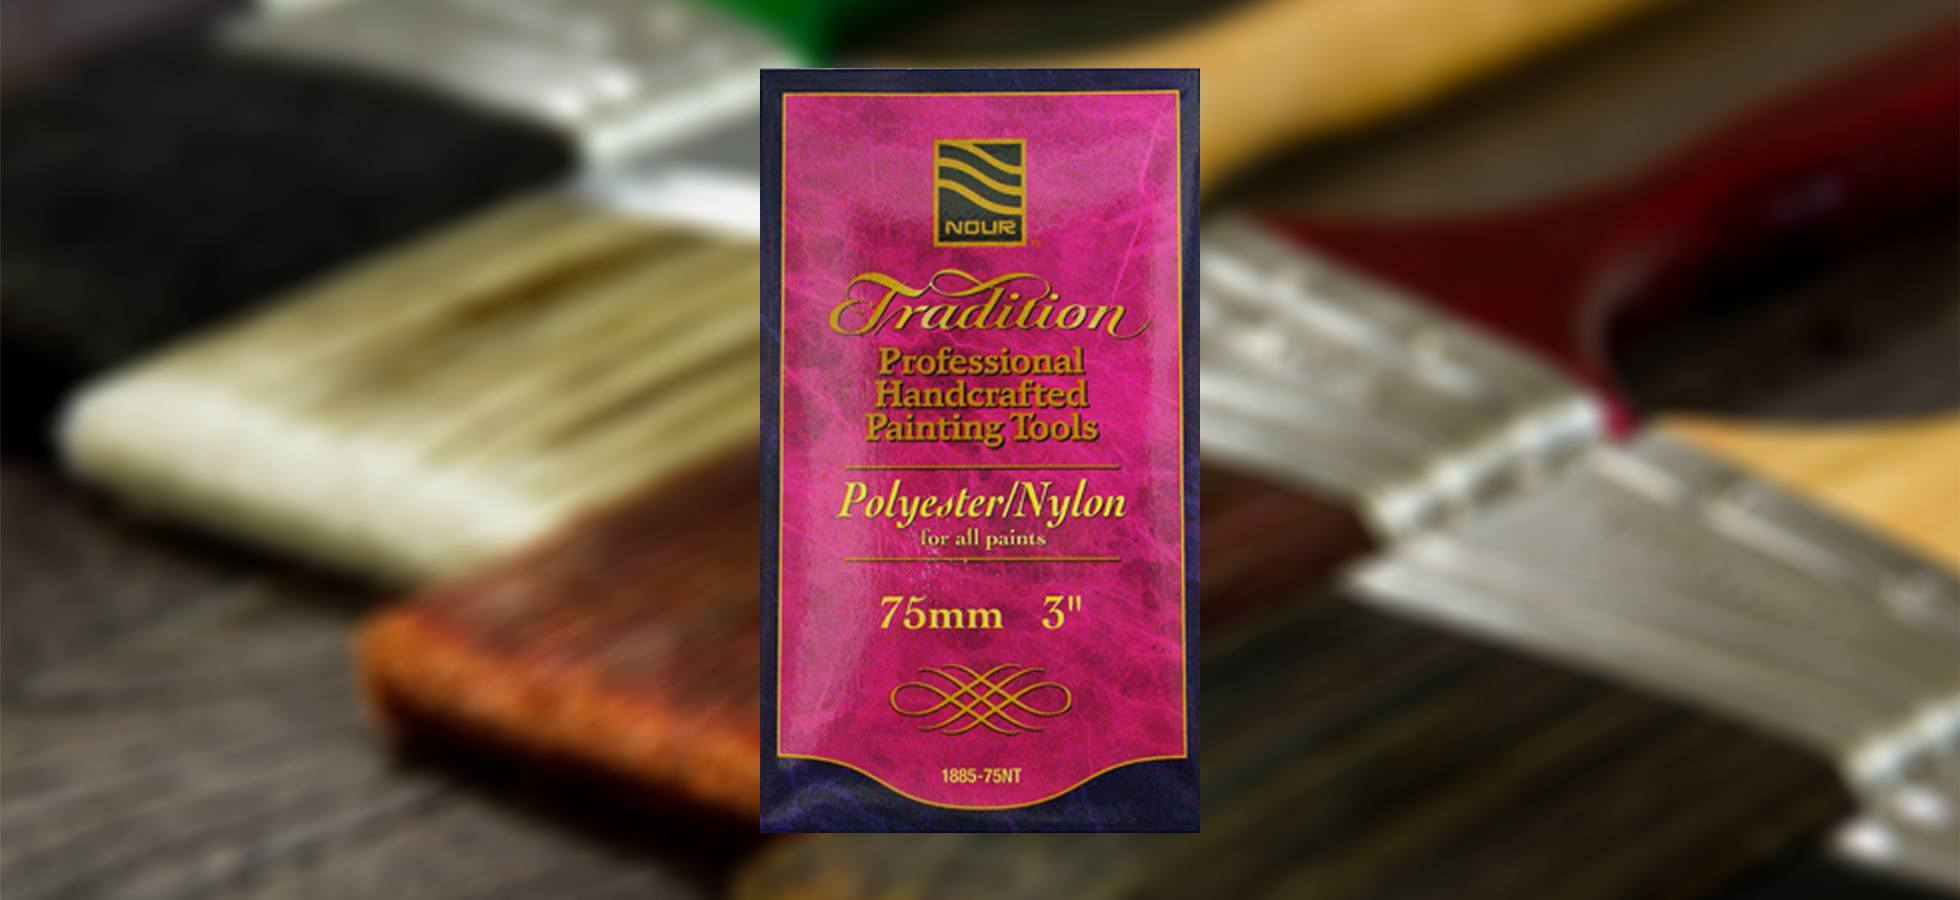 Nour Tradition Line Packaging